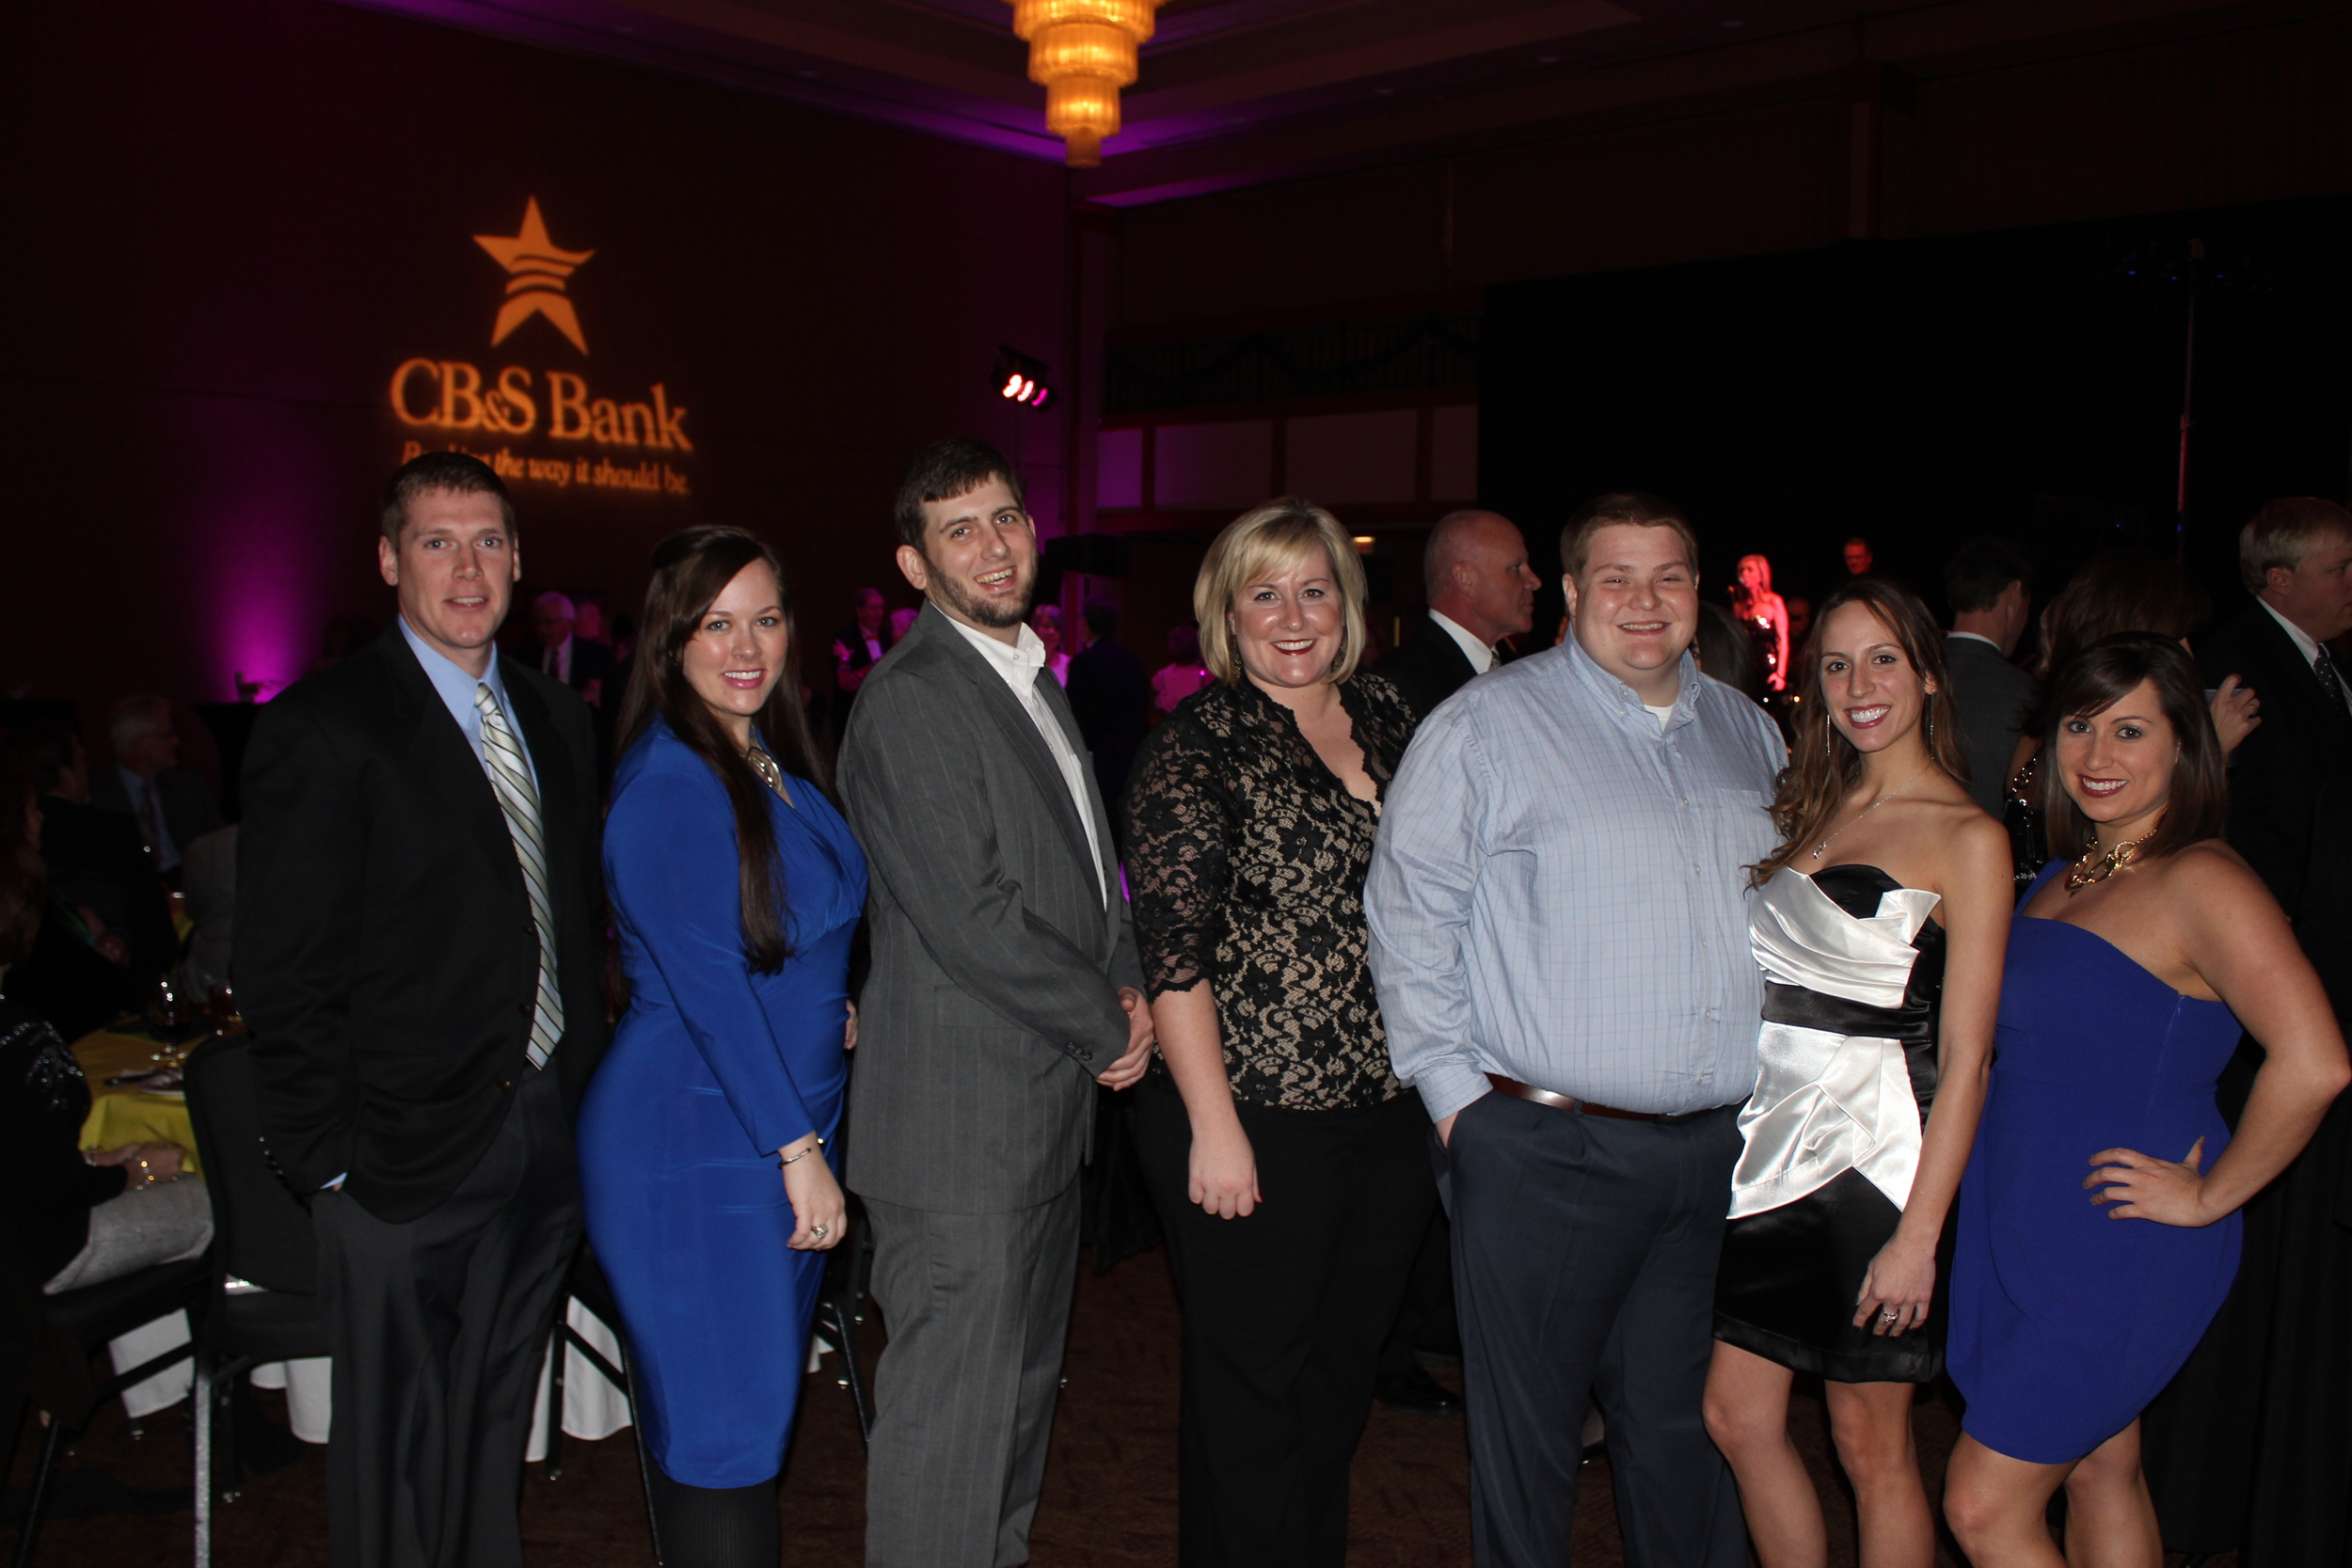 Our Crew - we clean up nice!